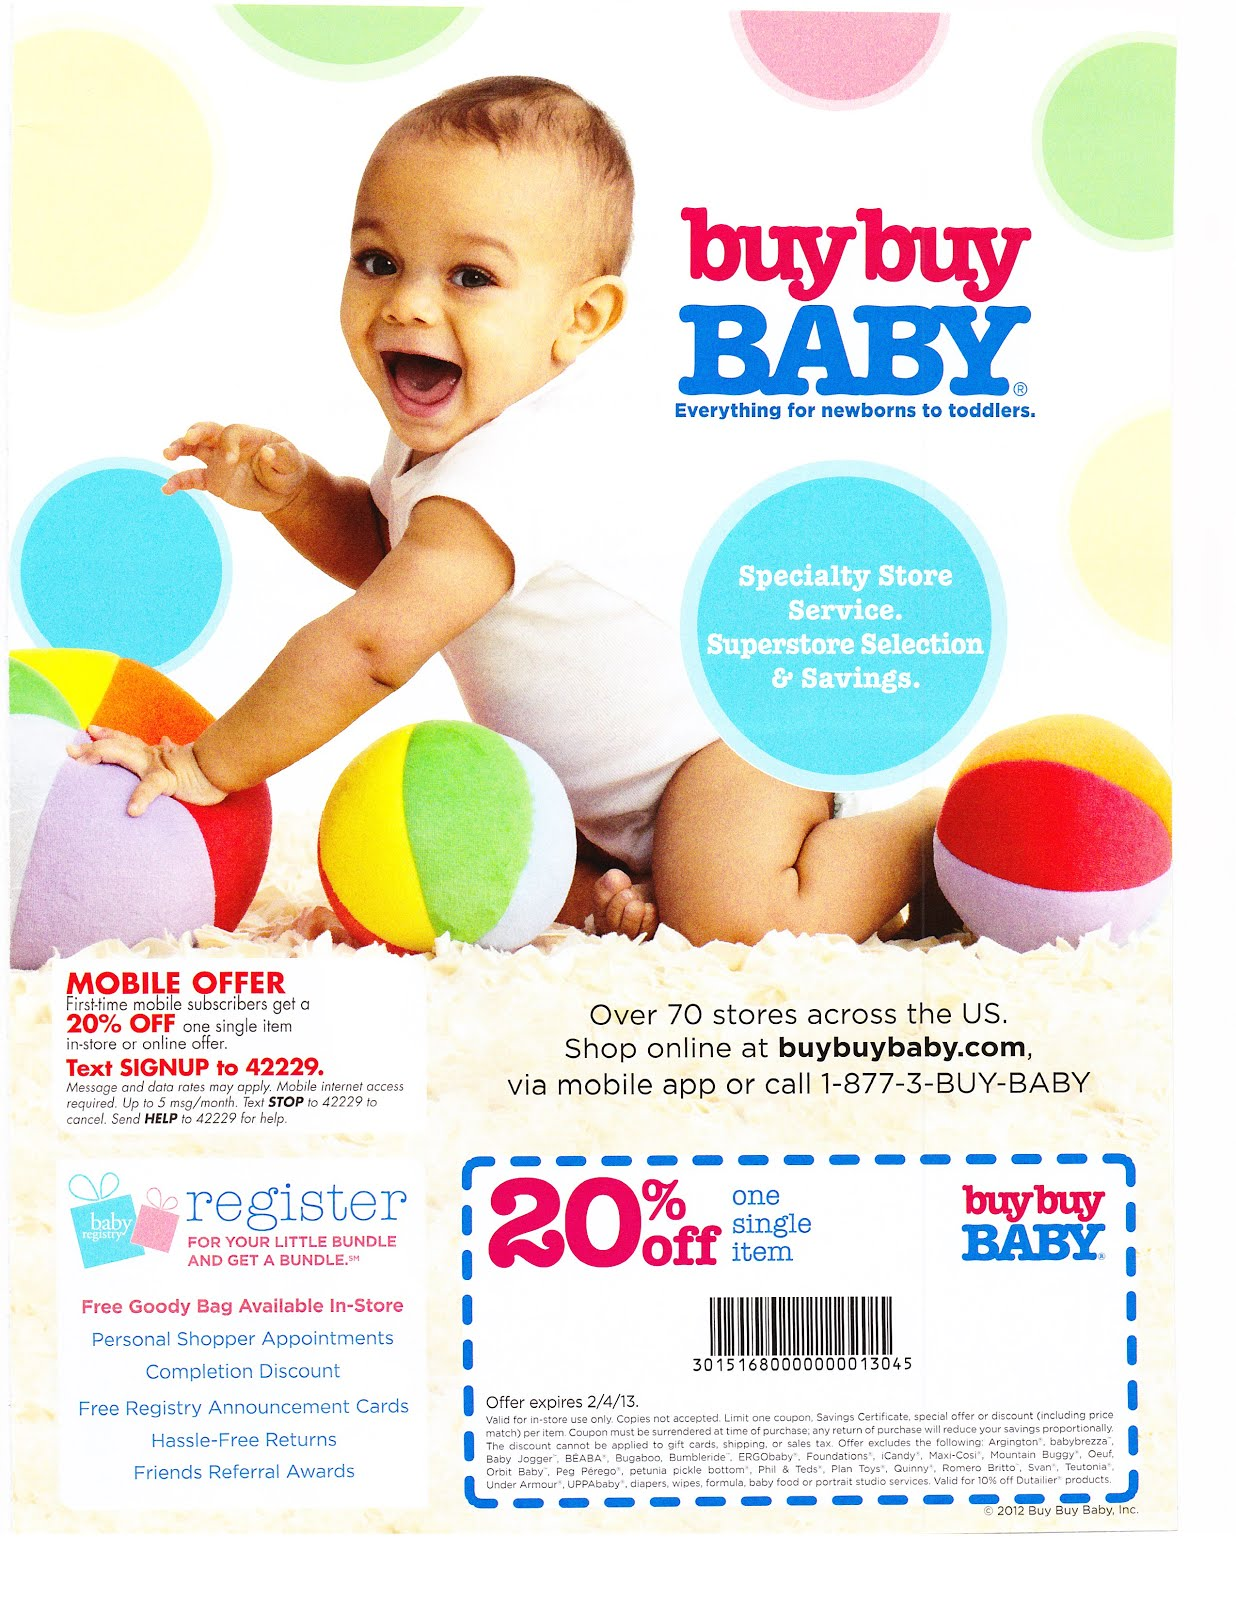 Buy buy baby discount coupon